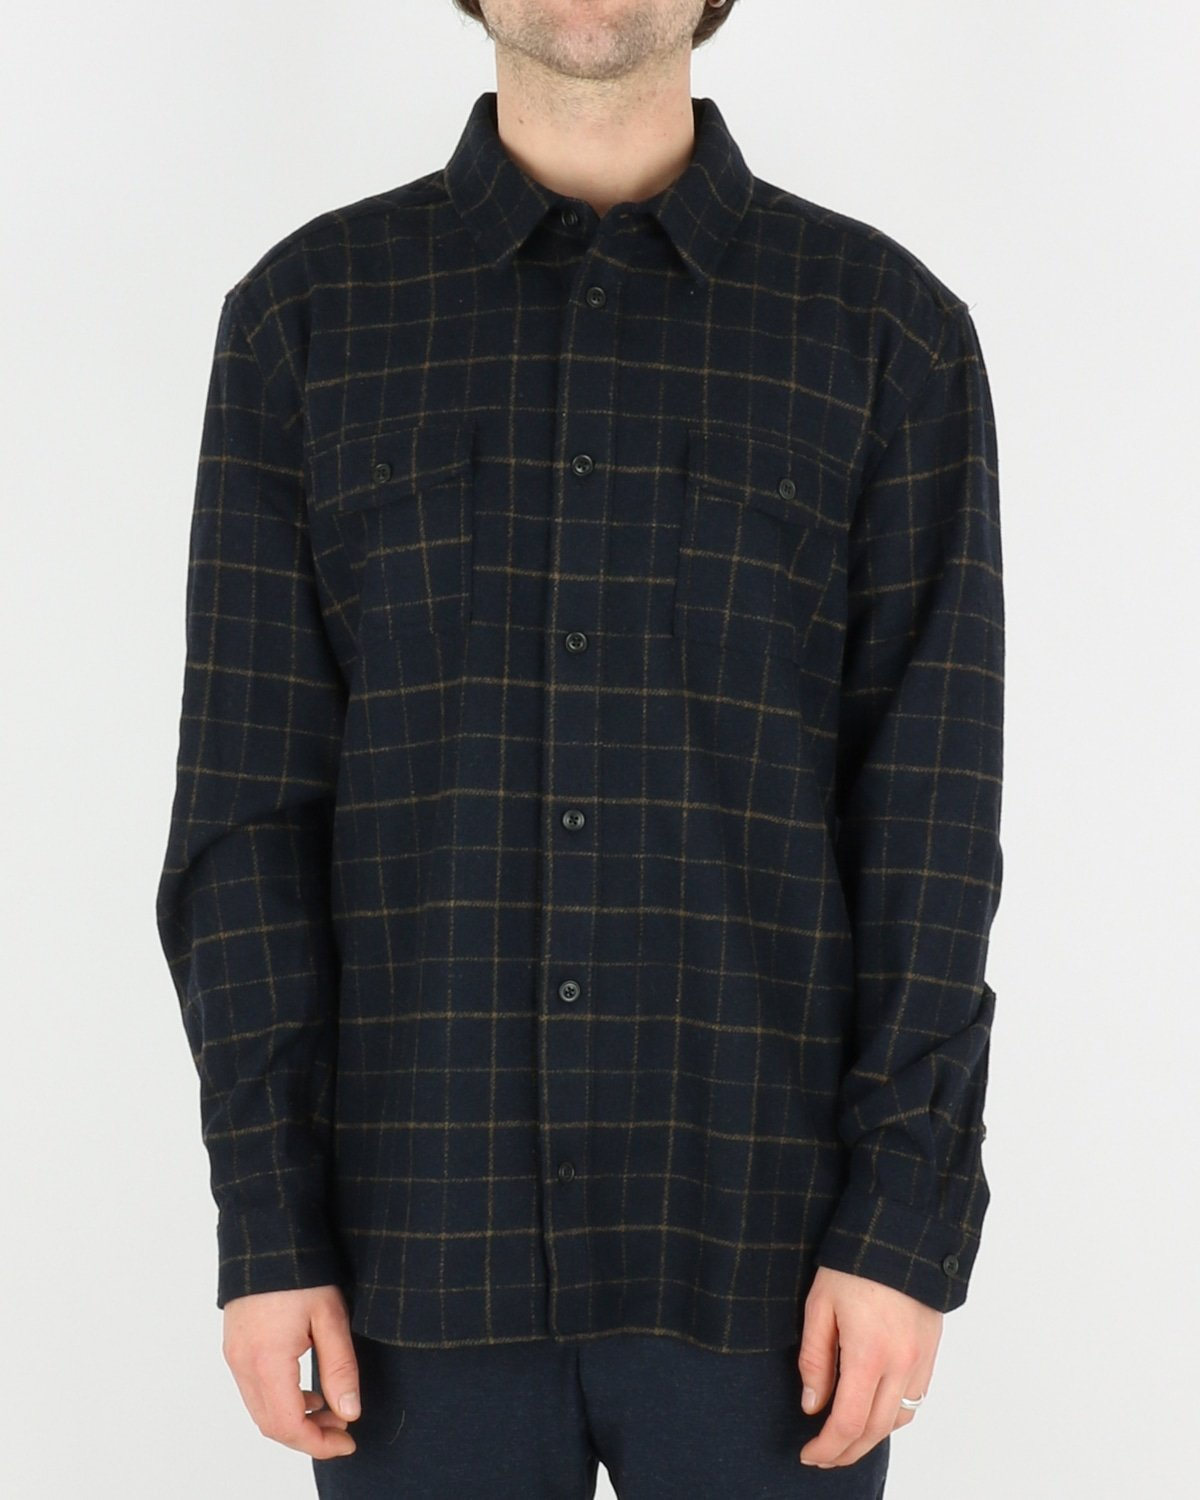 les deux_dines shirt jacket_dark navy_1_4